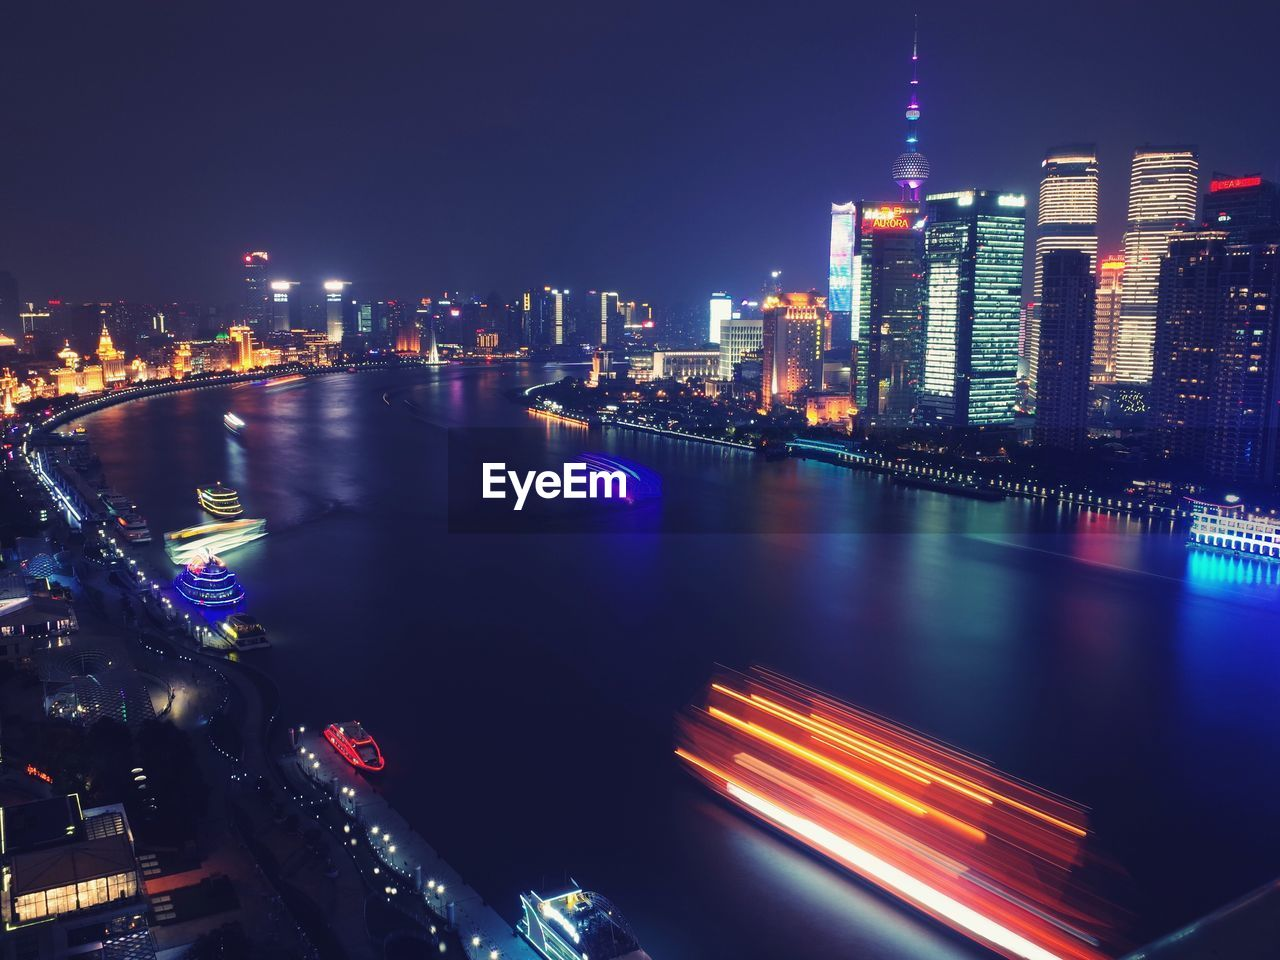 illuminated, city, night, skyscraper, architecture, building exterior, cityscape, built structure, urban skyline, travel destinations, modern, city life, tower, downtown district, outdoors, financial district, light trail, no people, urban scene, tall, clear sky, water, sky